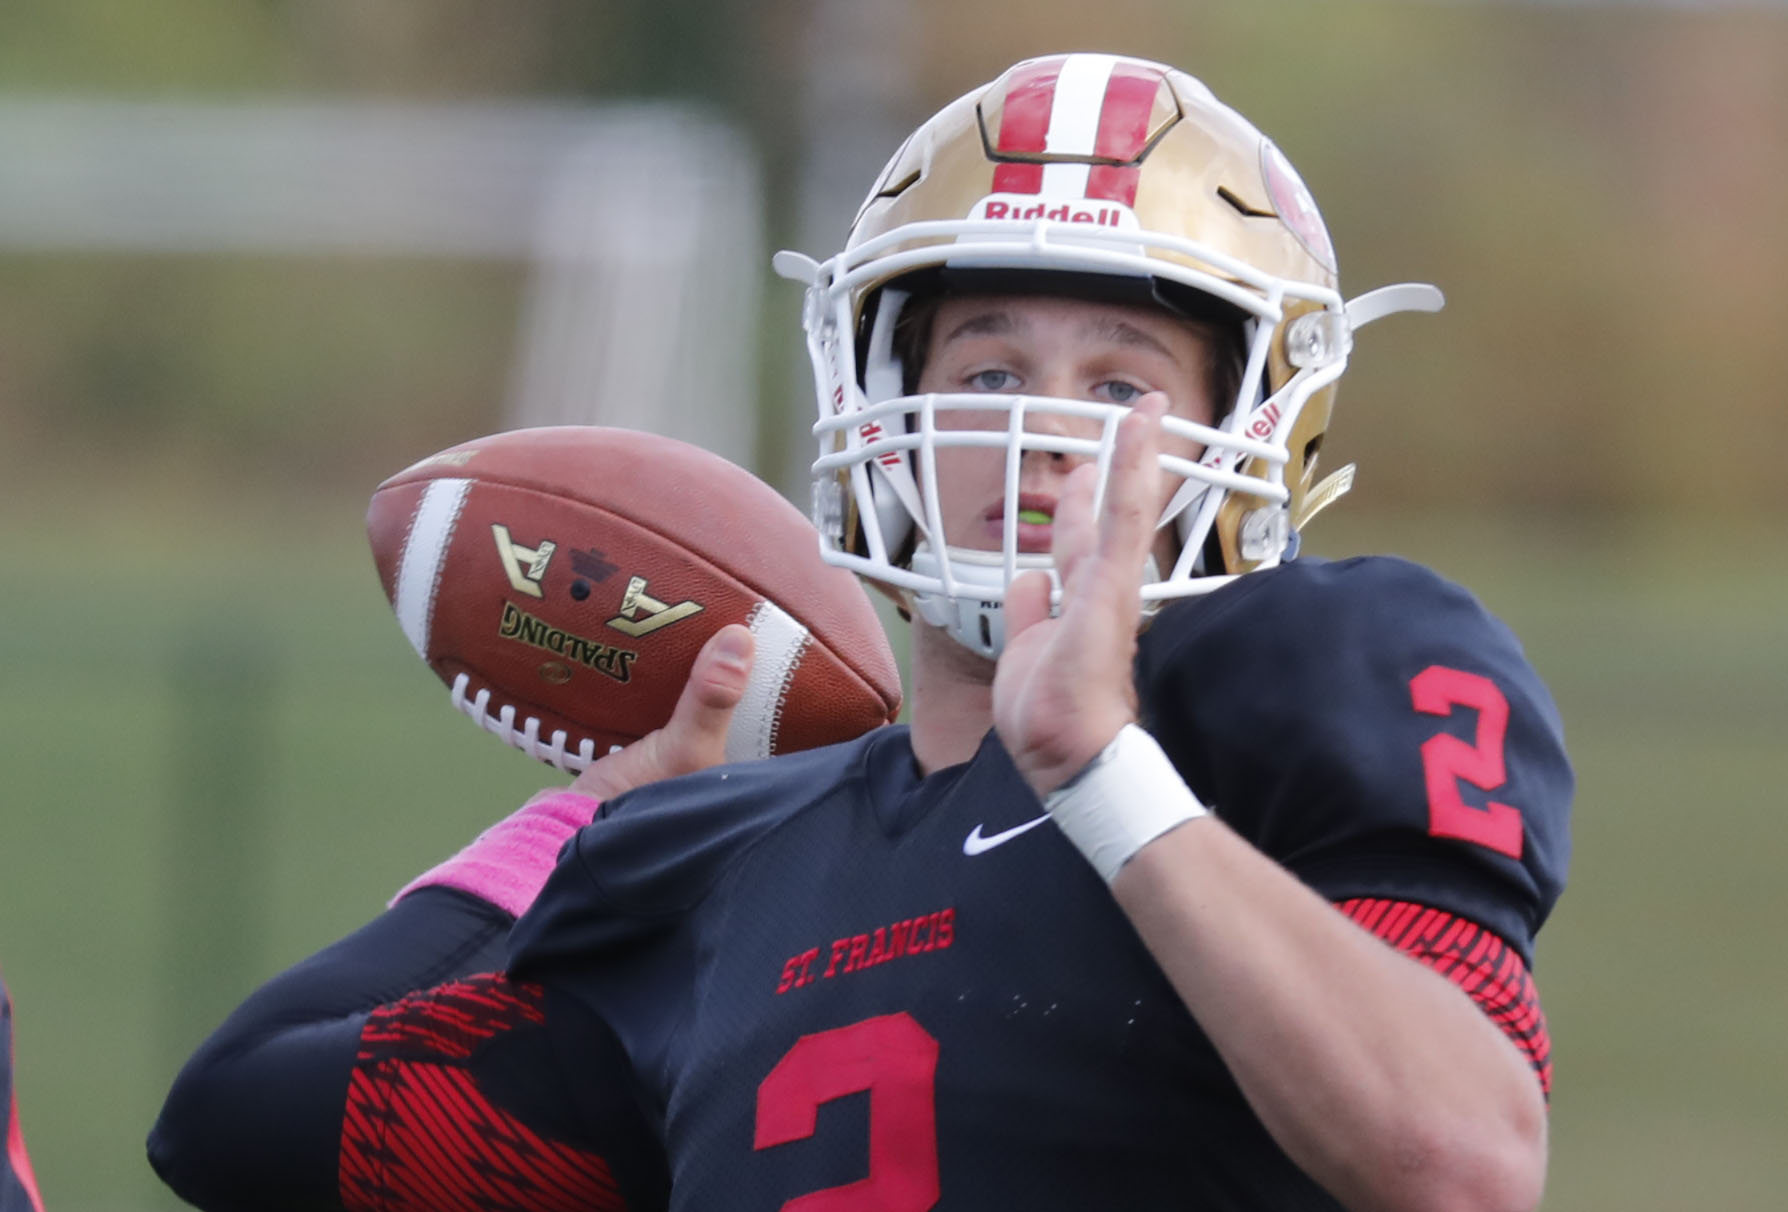 St. Francis quarterback Jerry Hickson is taking his talents to Santa Barbara City College. He's one of six Red Raiders who committed to college football programs, St. Francis coach Jerry Smith (not pictured) announced on Thursday.  (Harry Scull Jr./Buffalo News file photo)